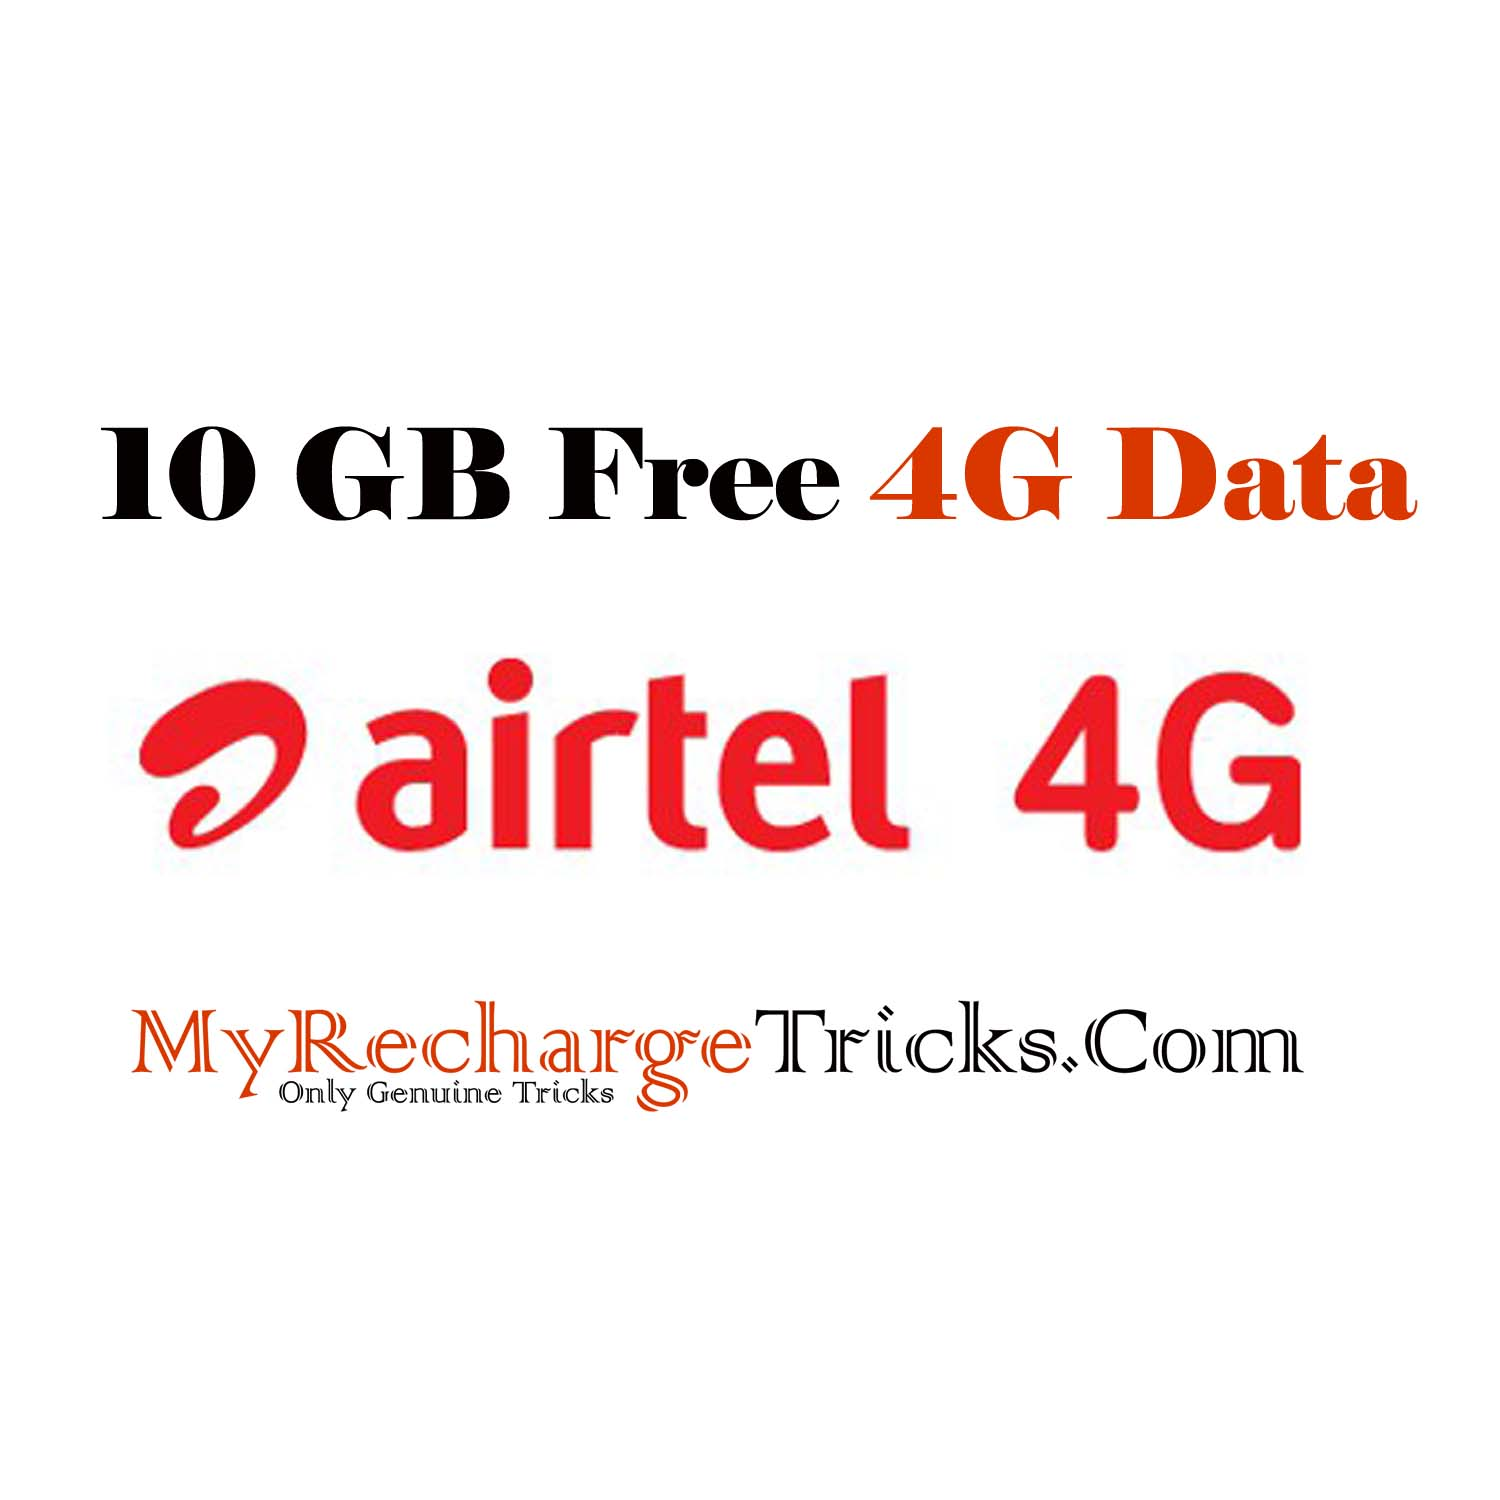 Airtel 4G Free Data Offer – Get 10GB Free 4G Data Just